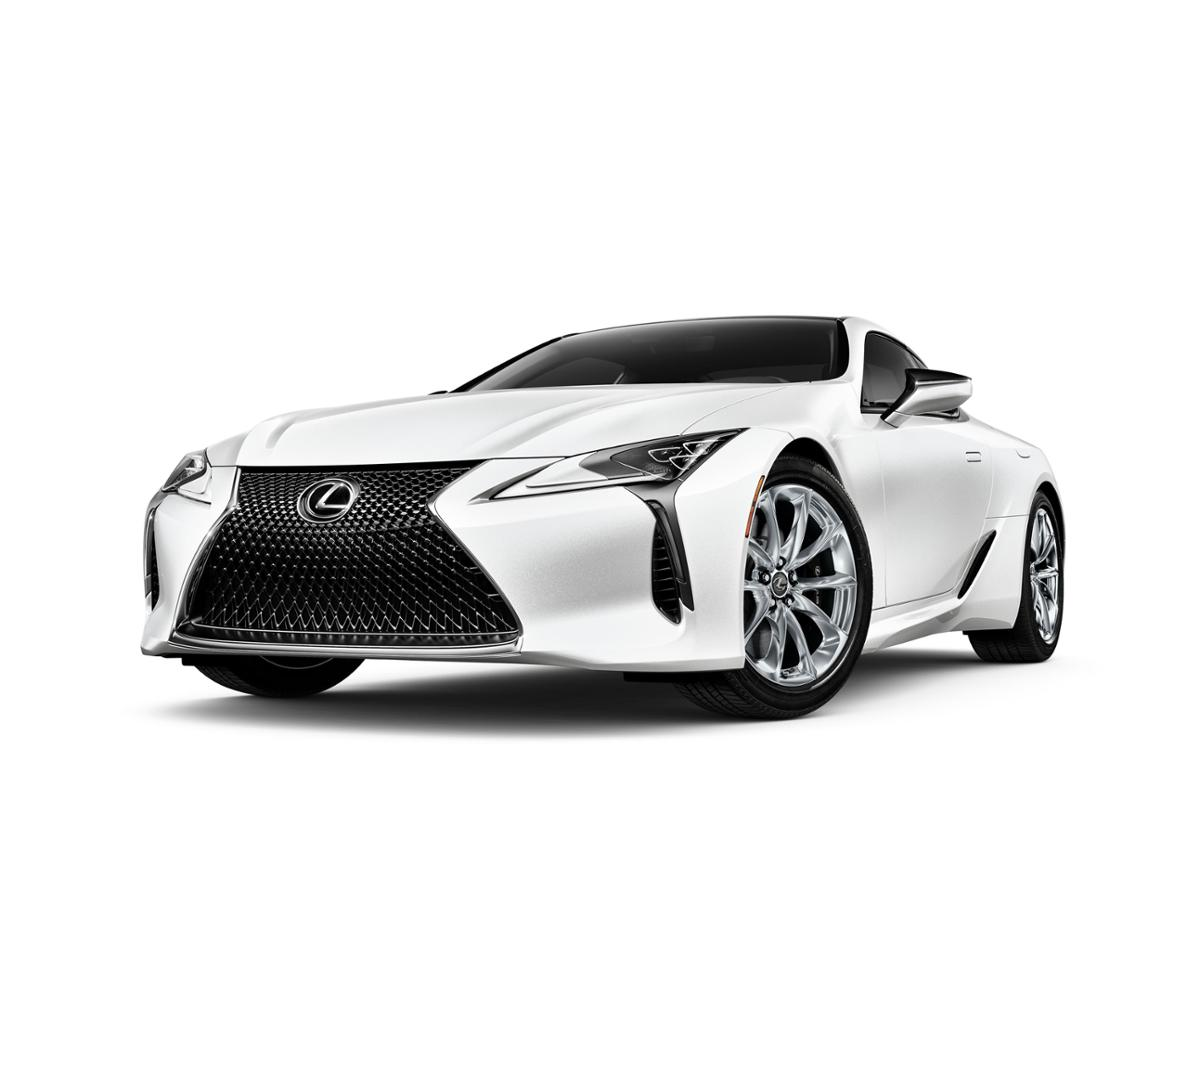 2018 Lexus LC 500 Vehicle Photo in Dallas, TX 75209